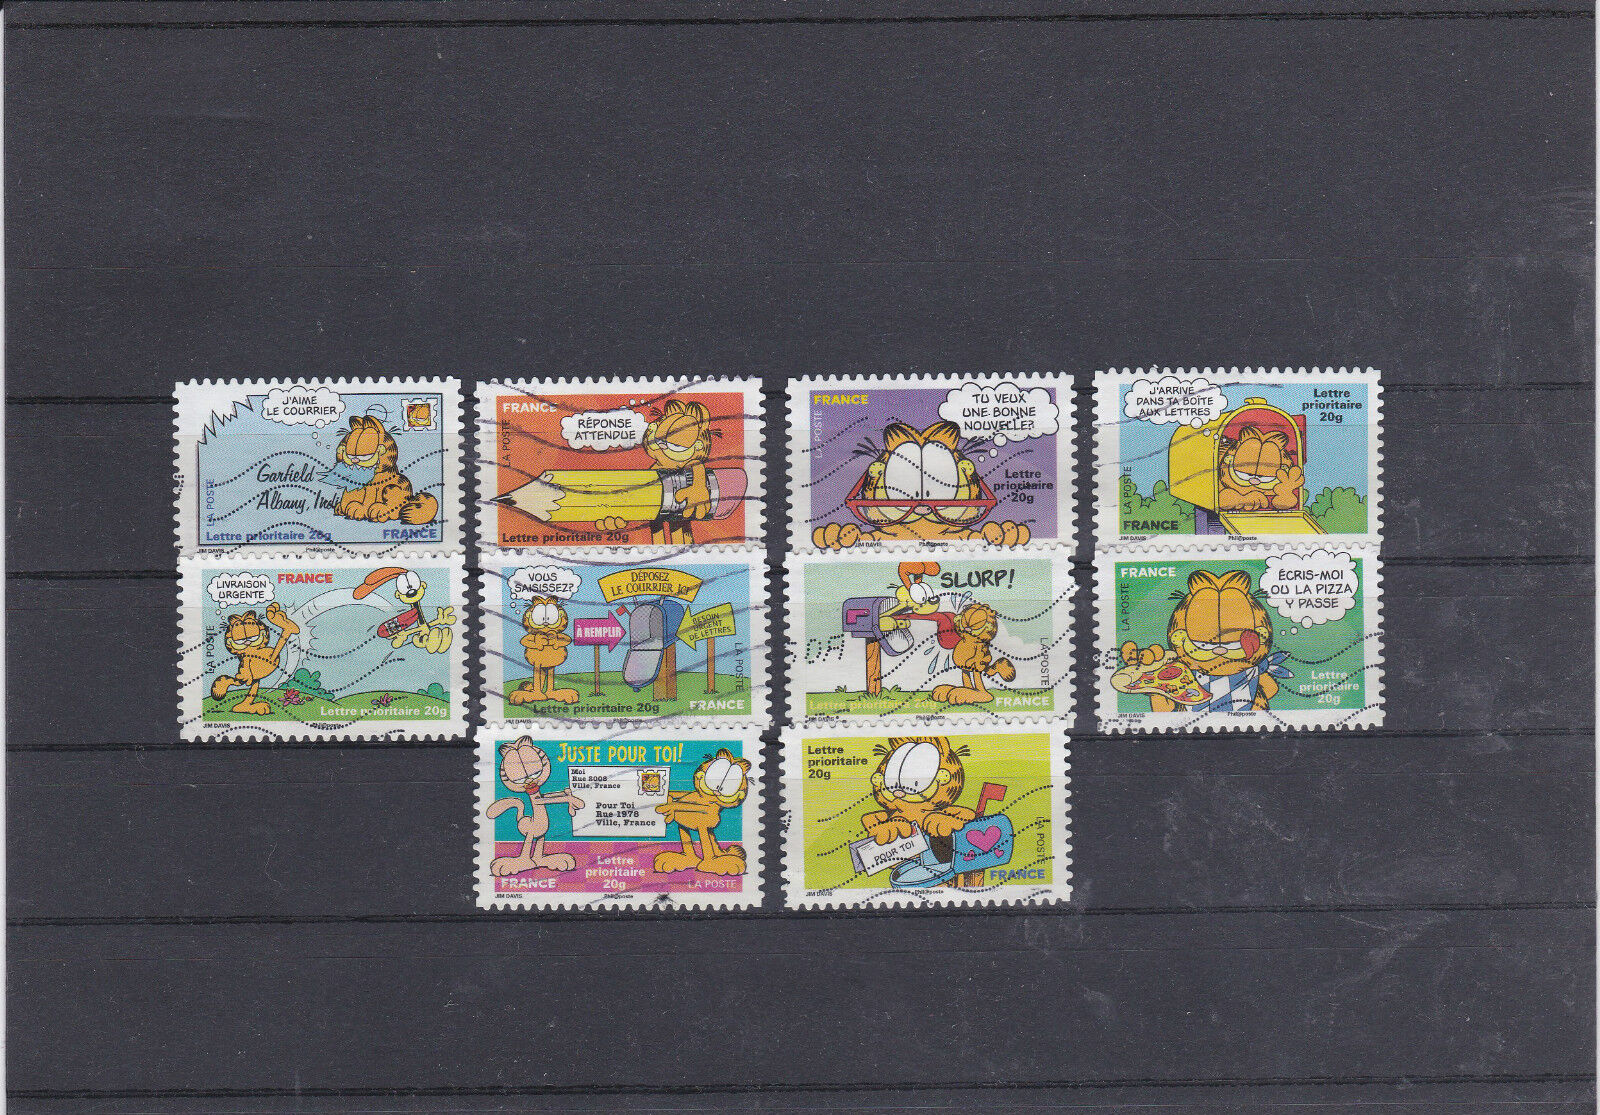 france 2008 sourires chat garfield serie complete de 10 timbres oblitere